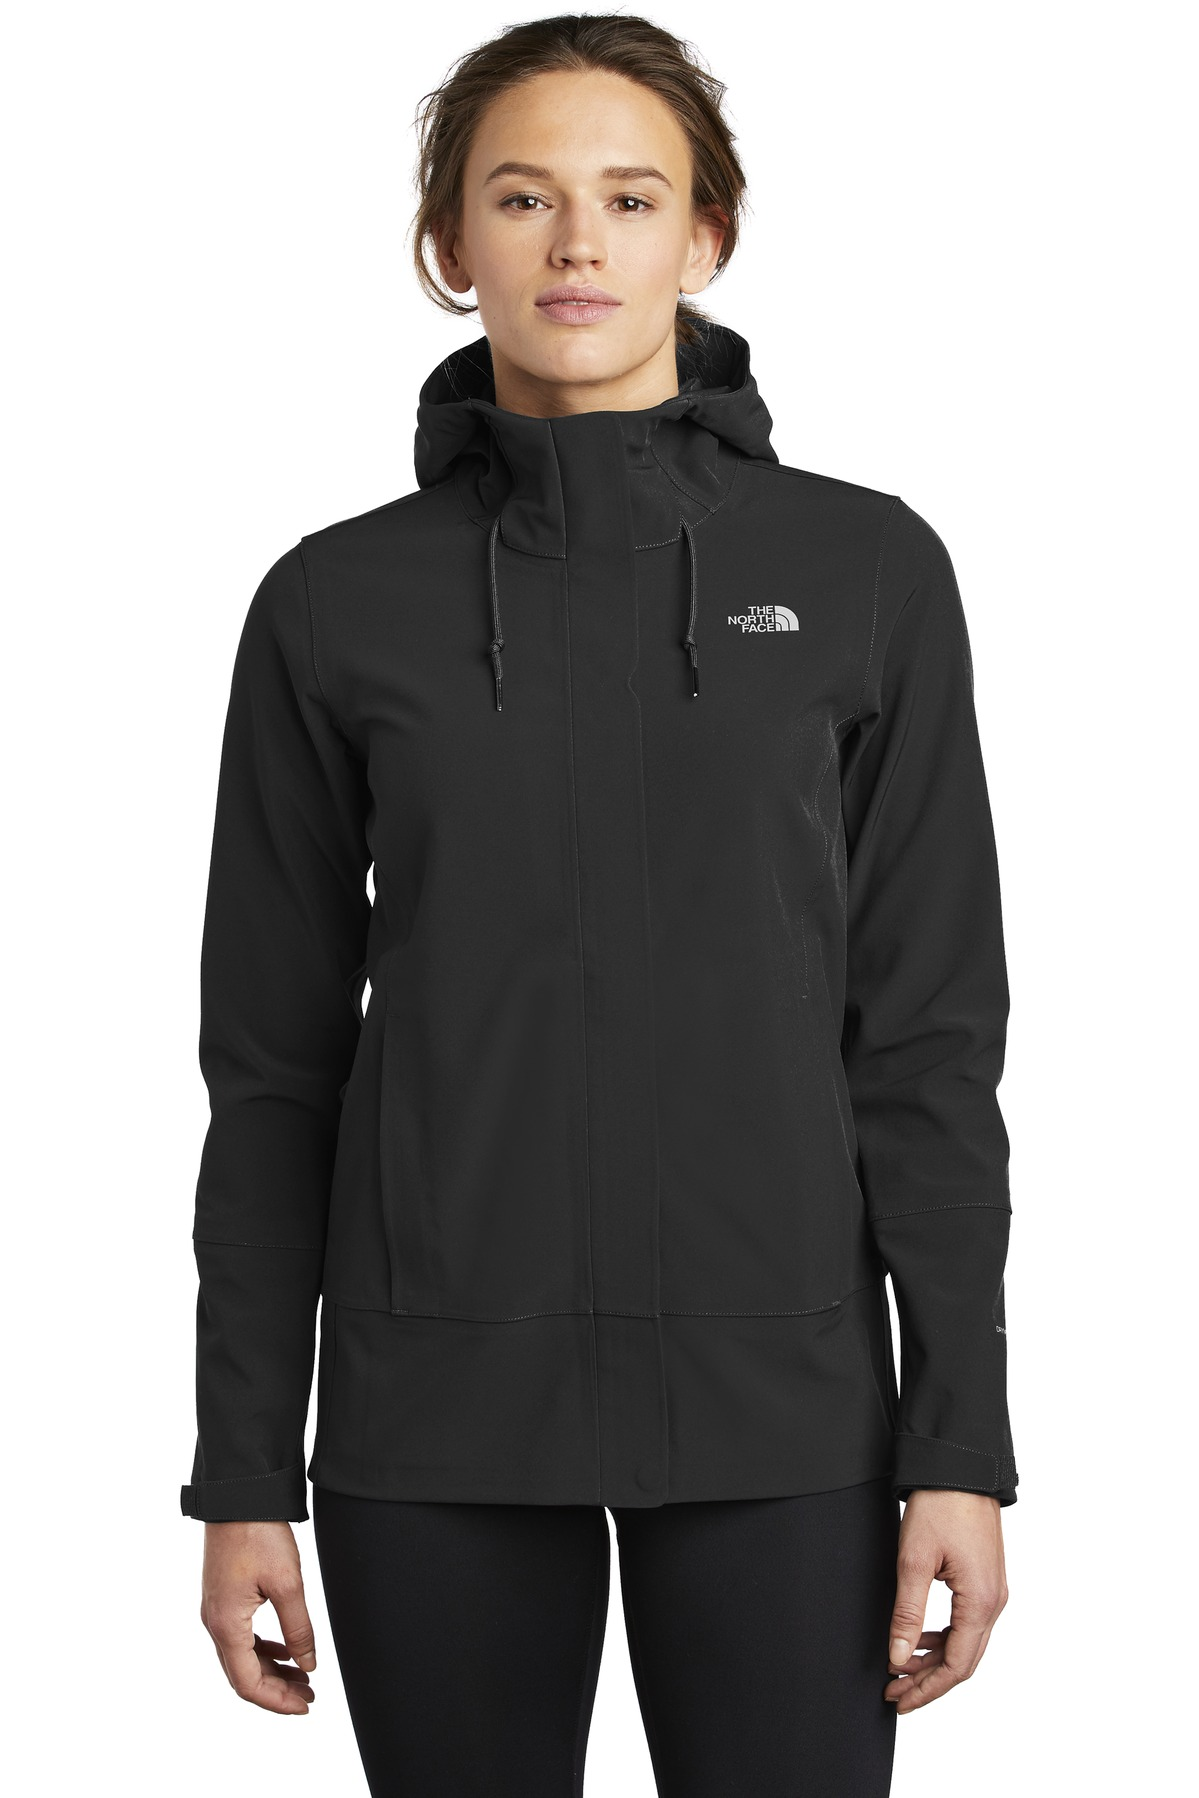 The North Face  ®  Ladies Apex DryVent  ™  Jacket NF0A47FJ - TNF Black